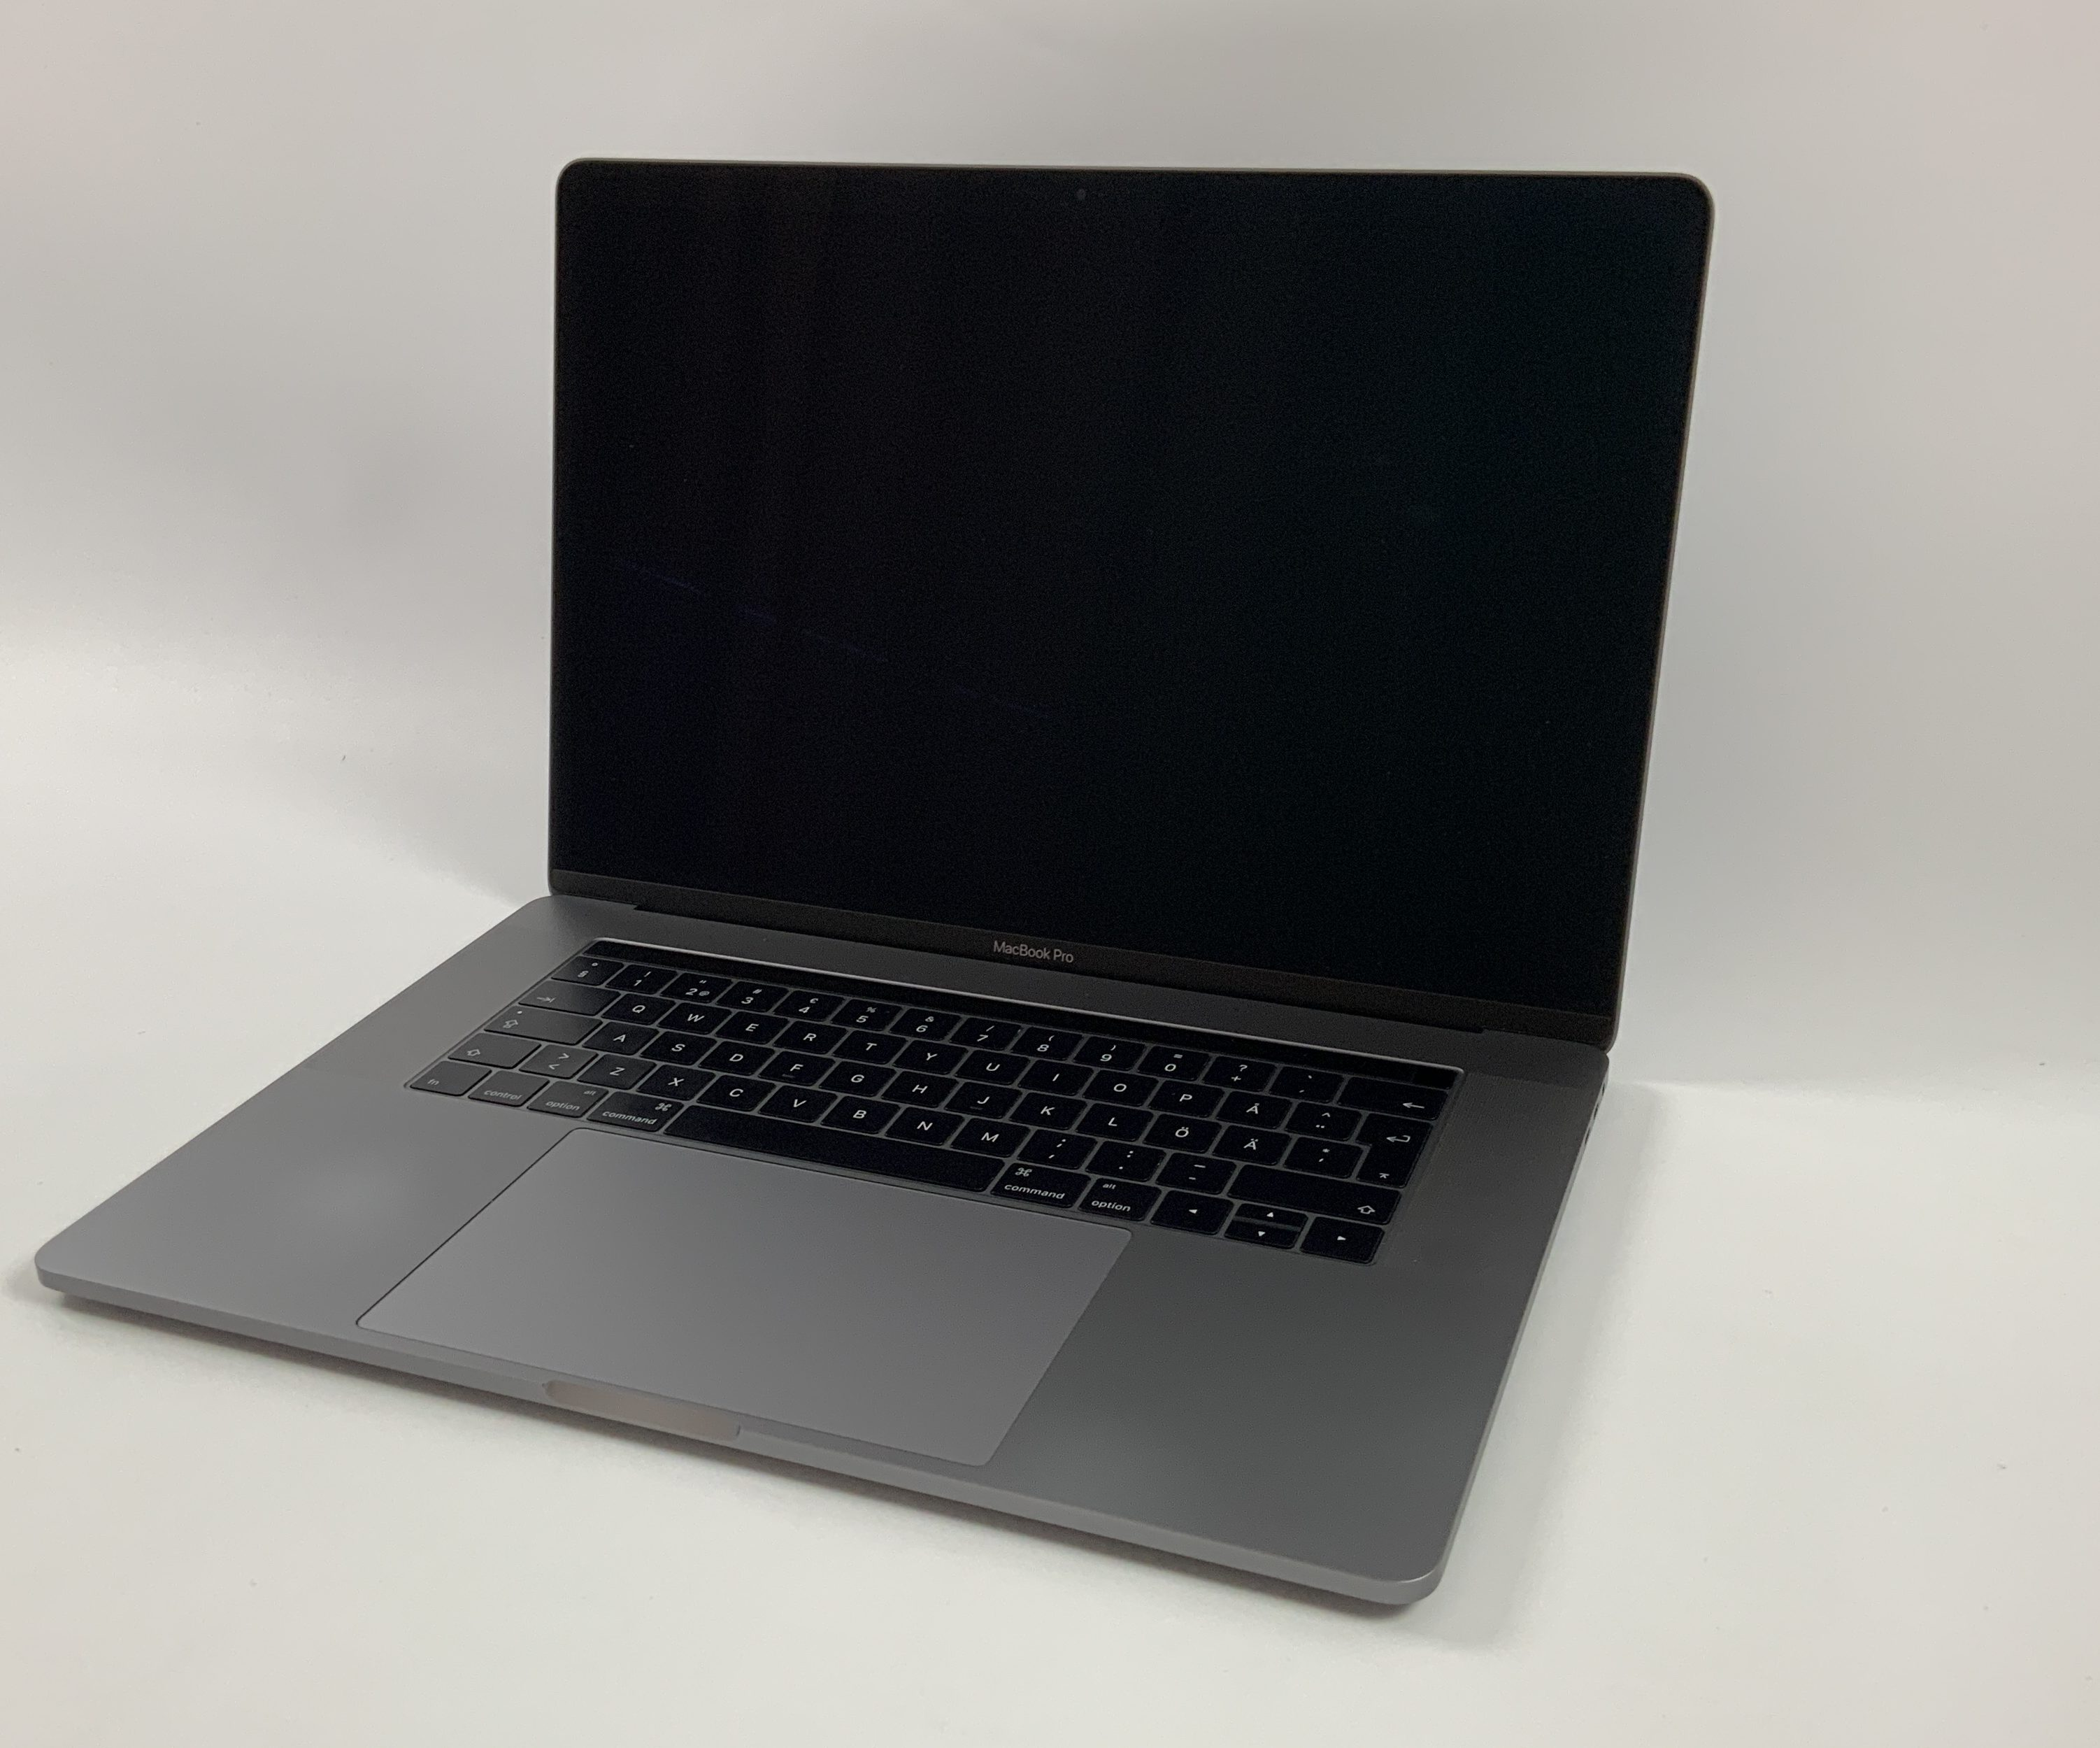 "MacBook Pro 15"" Touch Bar Late 2016 (Intel Quad-Core i7 2.6 GHz 16 GB RAM 512 GB SSD), Space Gray, Intel Quad-Core i7 2.6 GHz, 16 GB RAM, 512 GB SSD, Afbeelding 1"